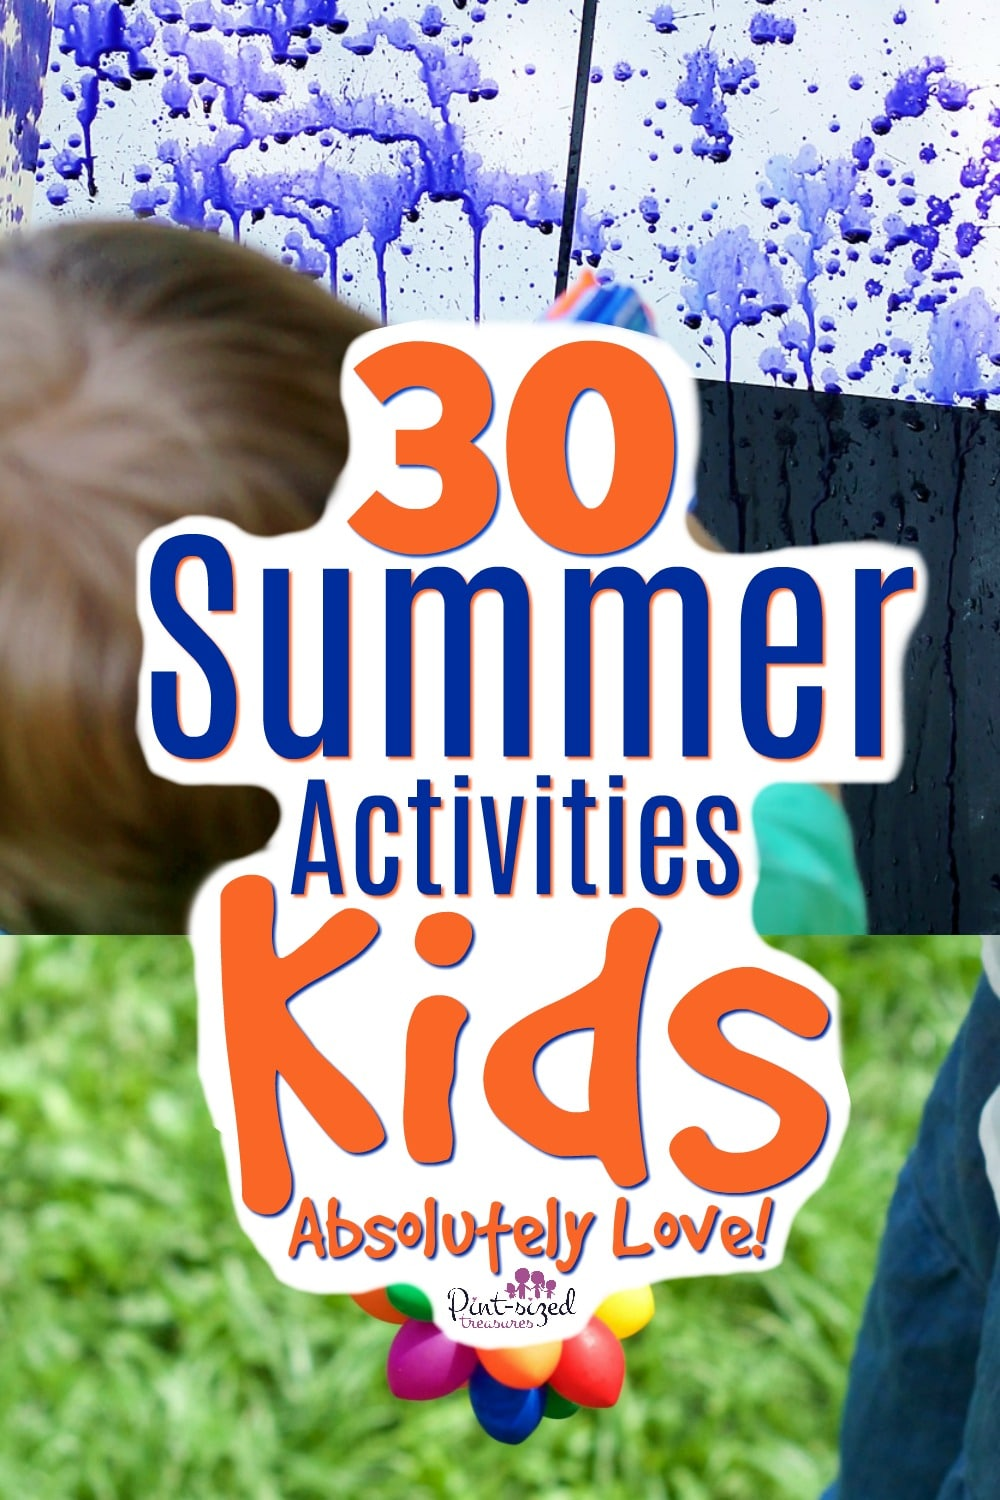 Summer activities kids LOVE!